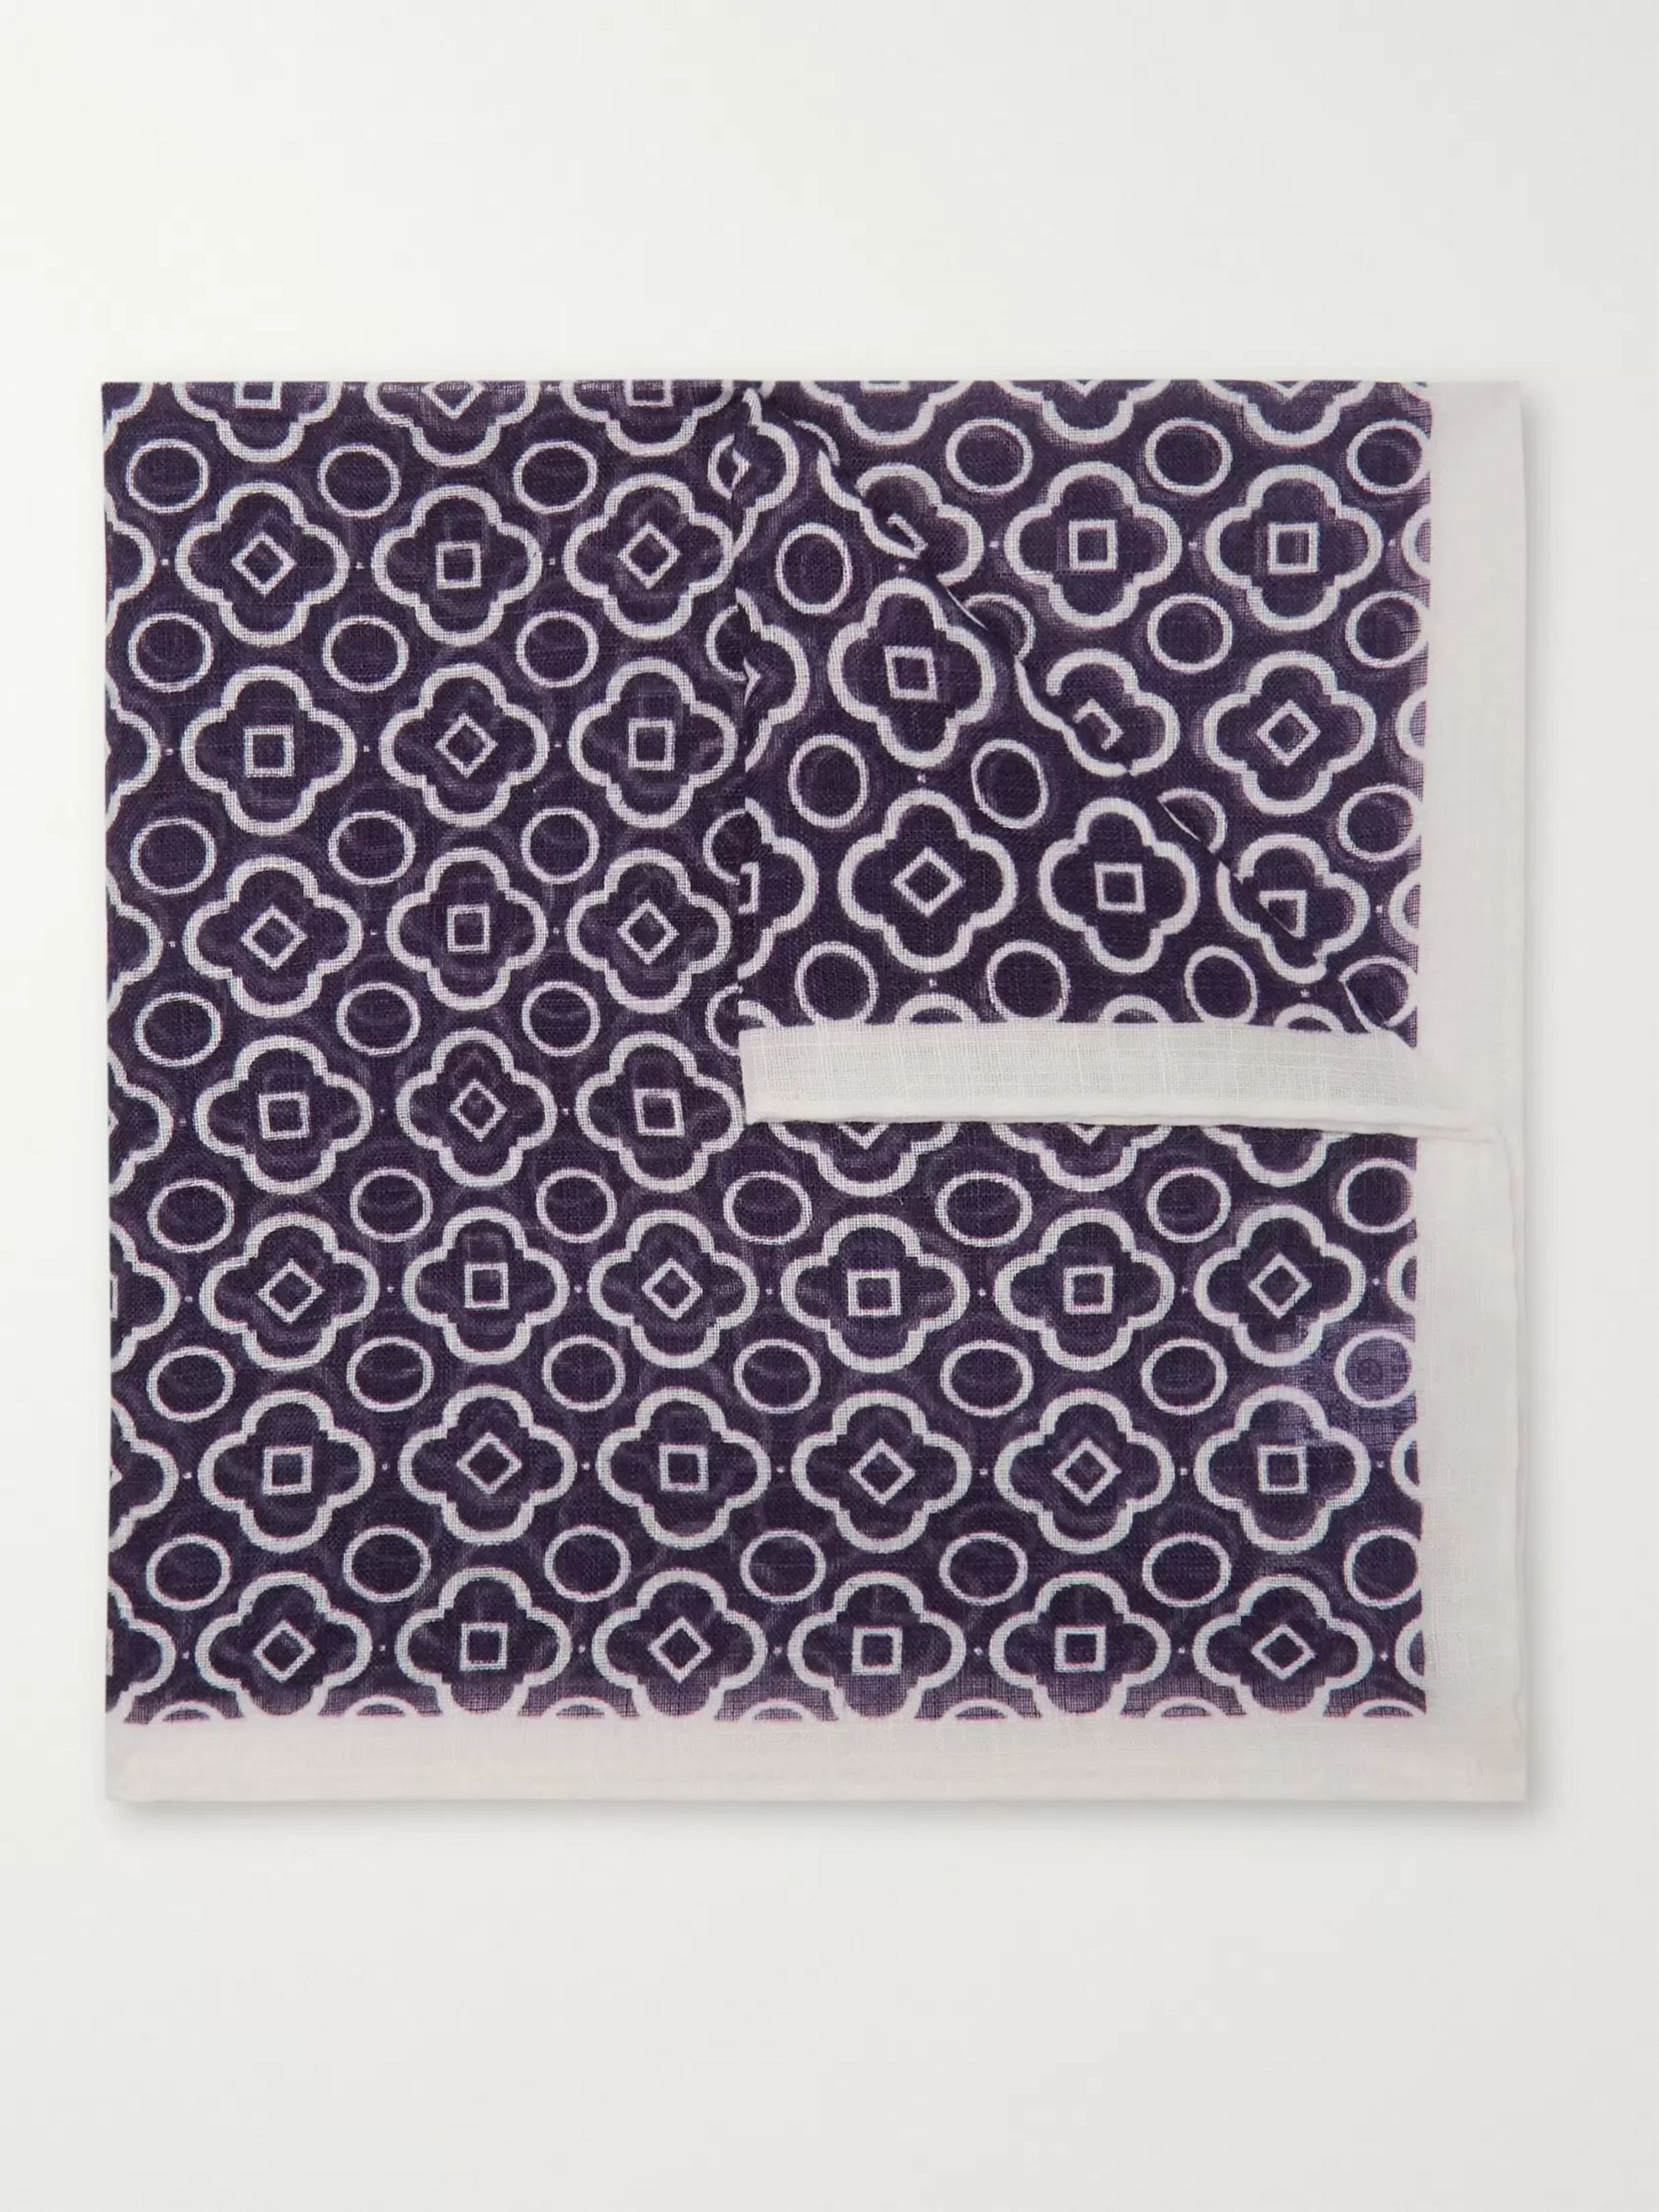 Anderson & Sheppard Printed Cotton Pocket Square